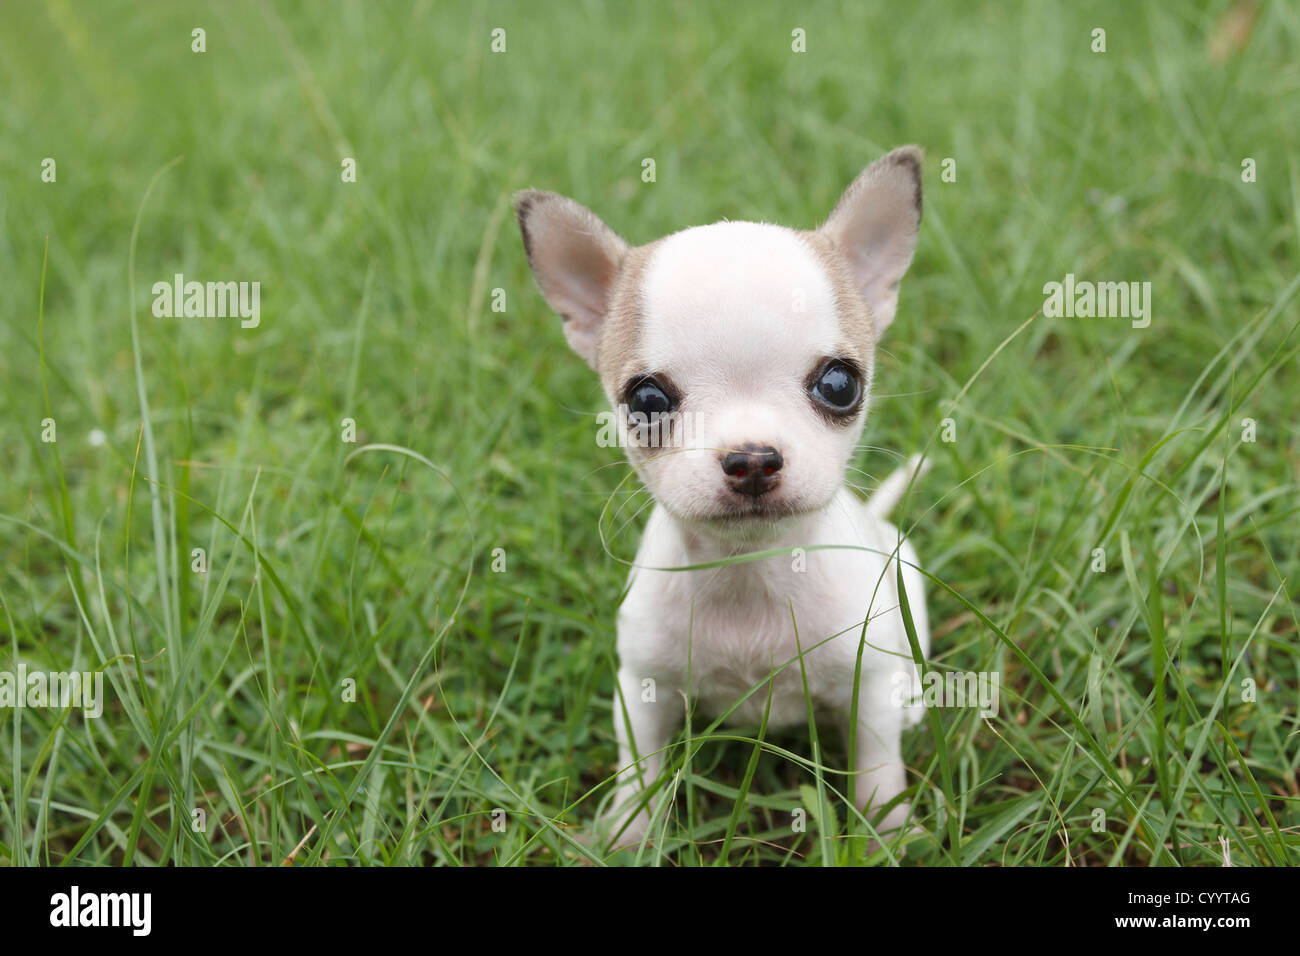 Puppy chihuahua sitting at the grass - Stock Image